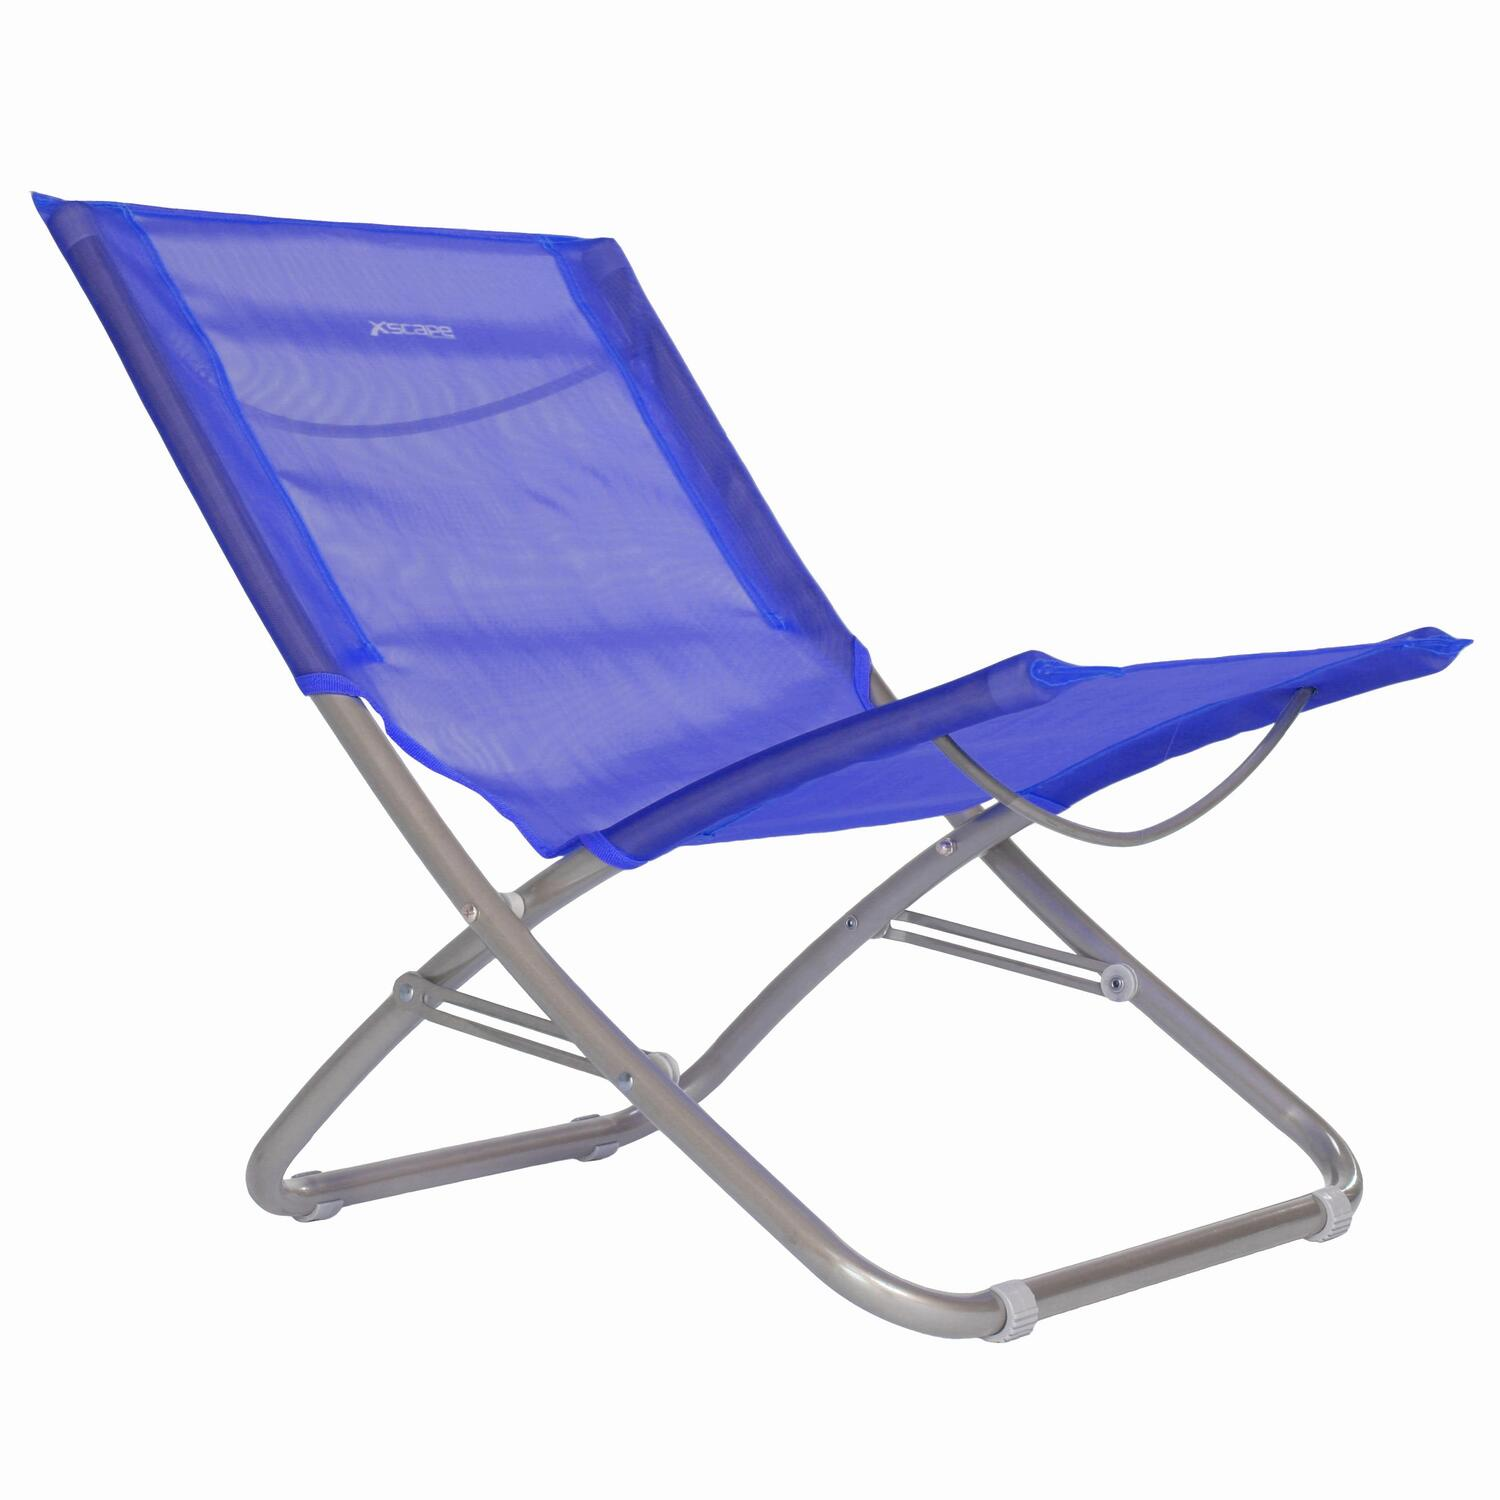 Folding Beach Chair Xscape Sol Lite Folding Beach Chair By Oj Commerce 28 99